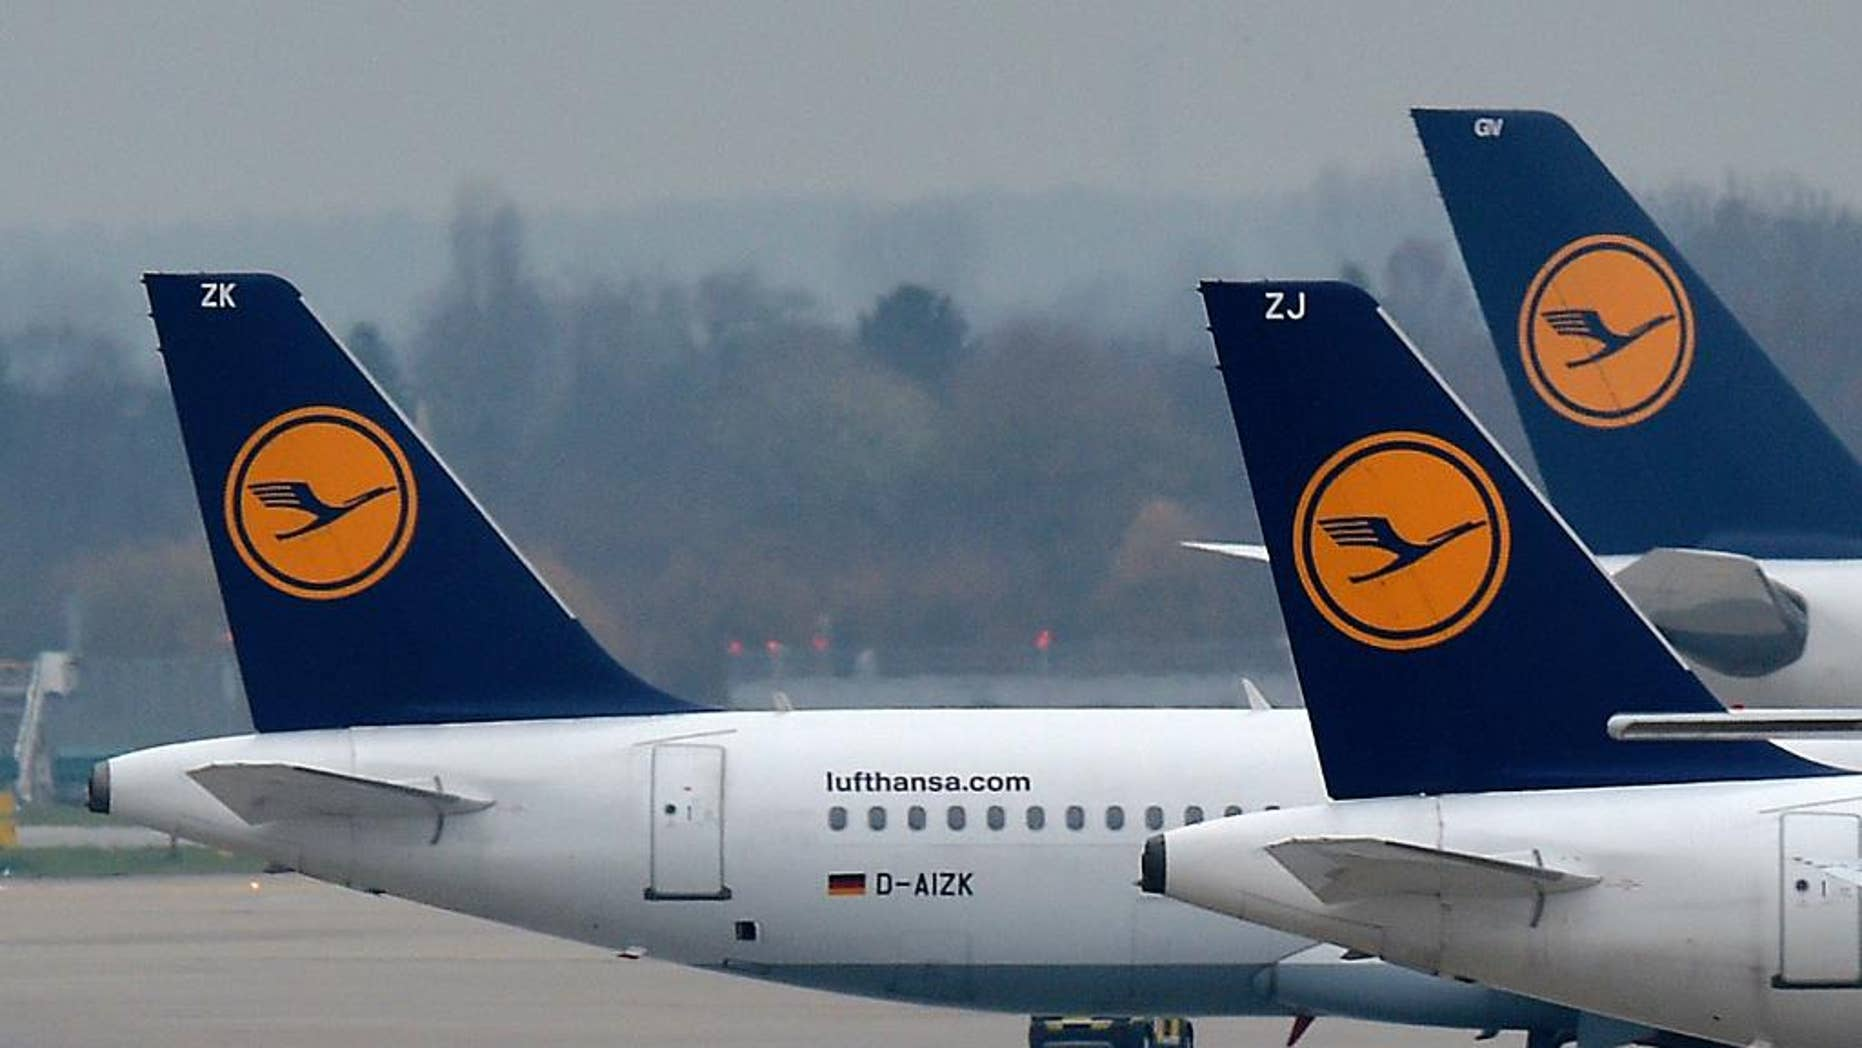 FILE - In this Dec. 1, 2014 file photo Lufthansa planes are parked at the airport in Duesseldorf, Germany. Lufthansa and their pilots found an agreement over all their rate disputes. (AP Photo/Martin Meissner, File)